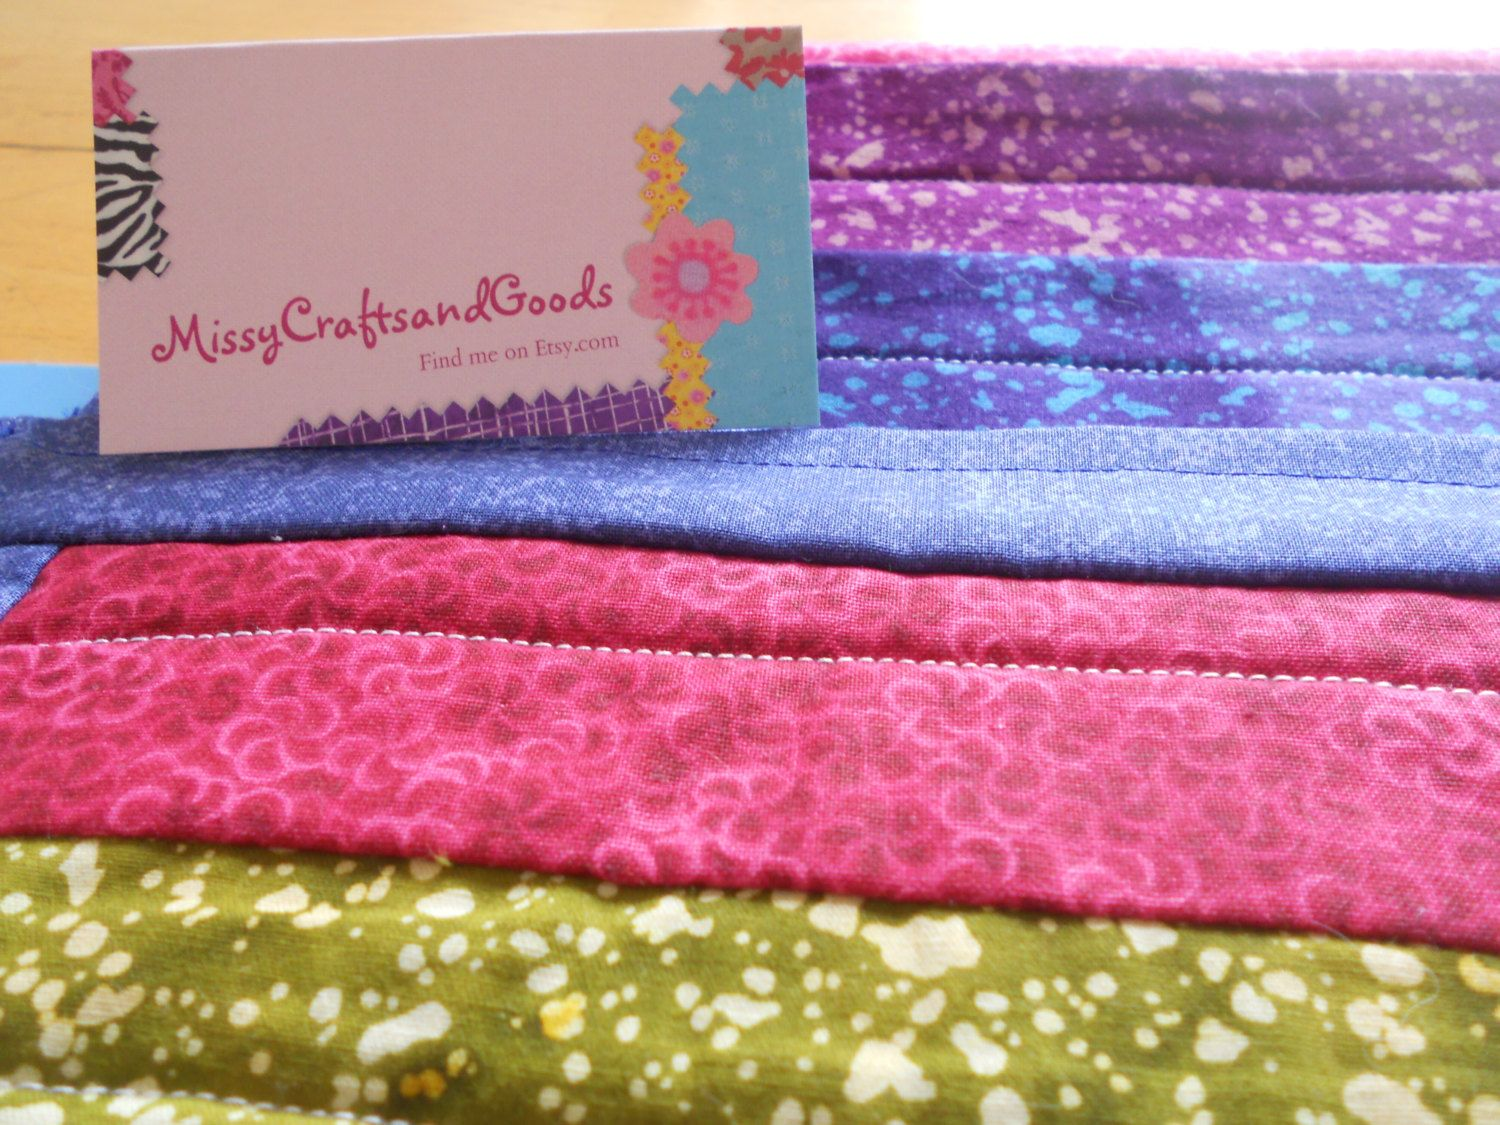 Flannel fleece blanket  Lap Quilt Wild colors Jelly Roll quilt Beautiful bright fun colors